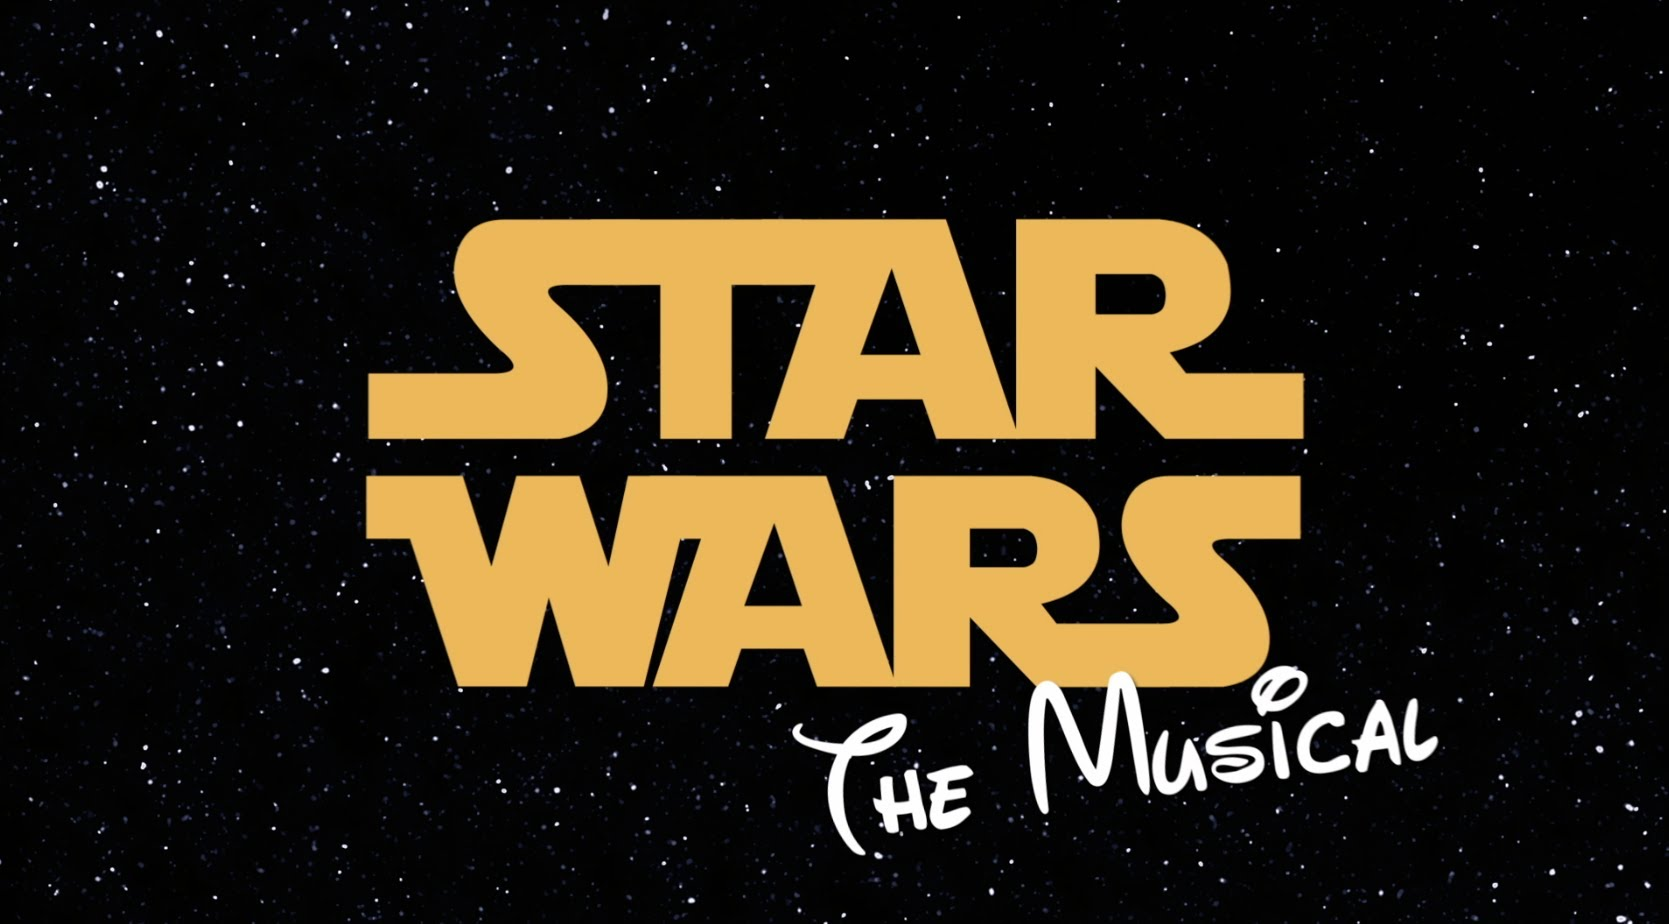 STAR WARS – THE MUSICAL